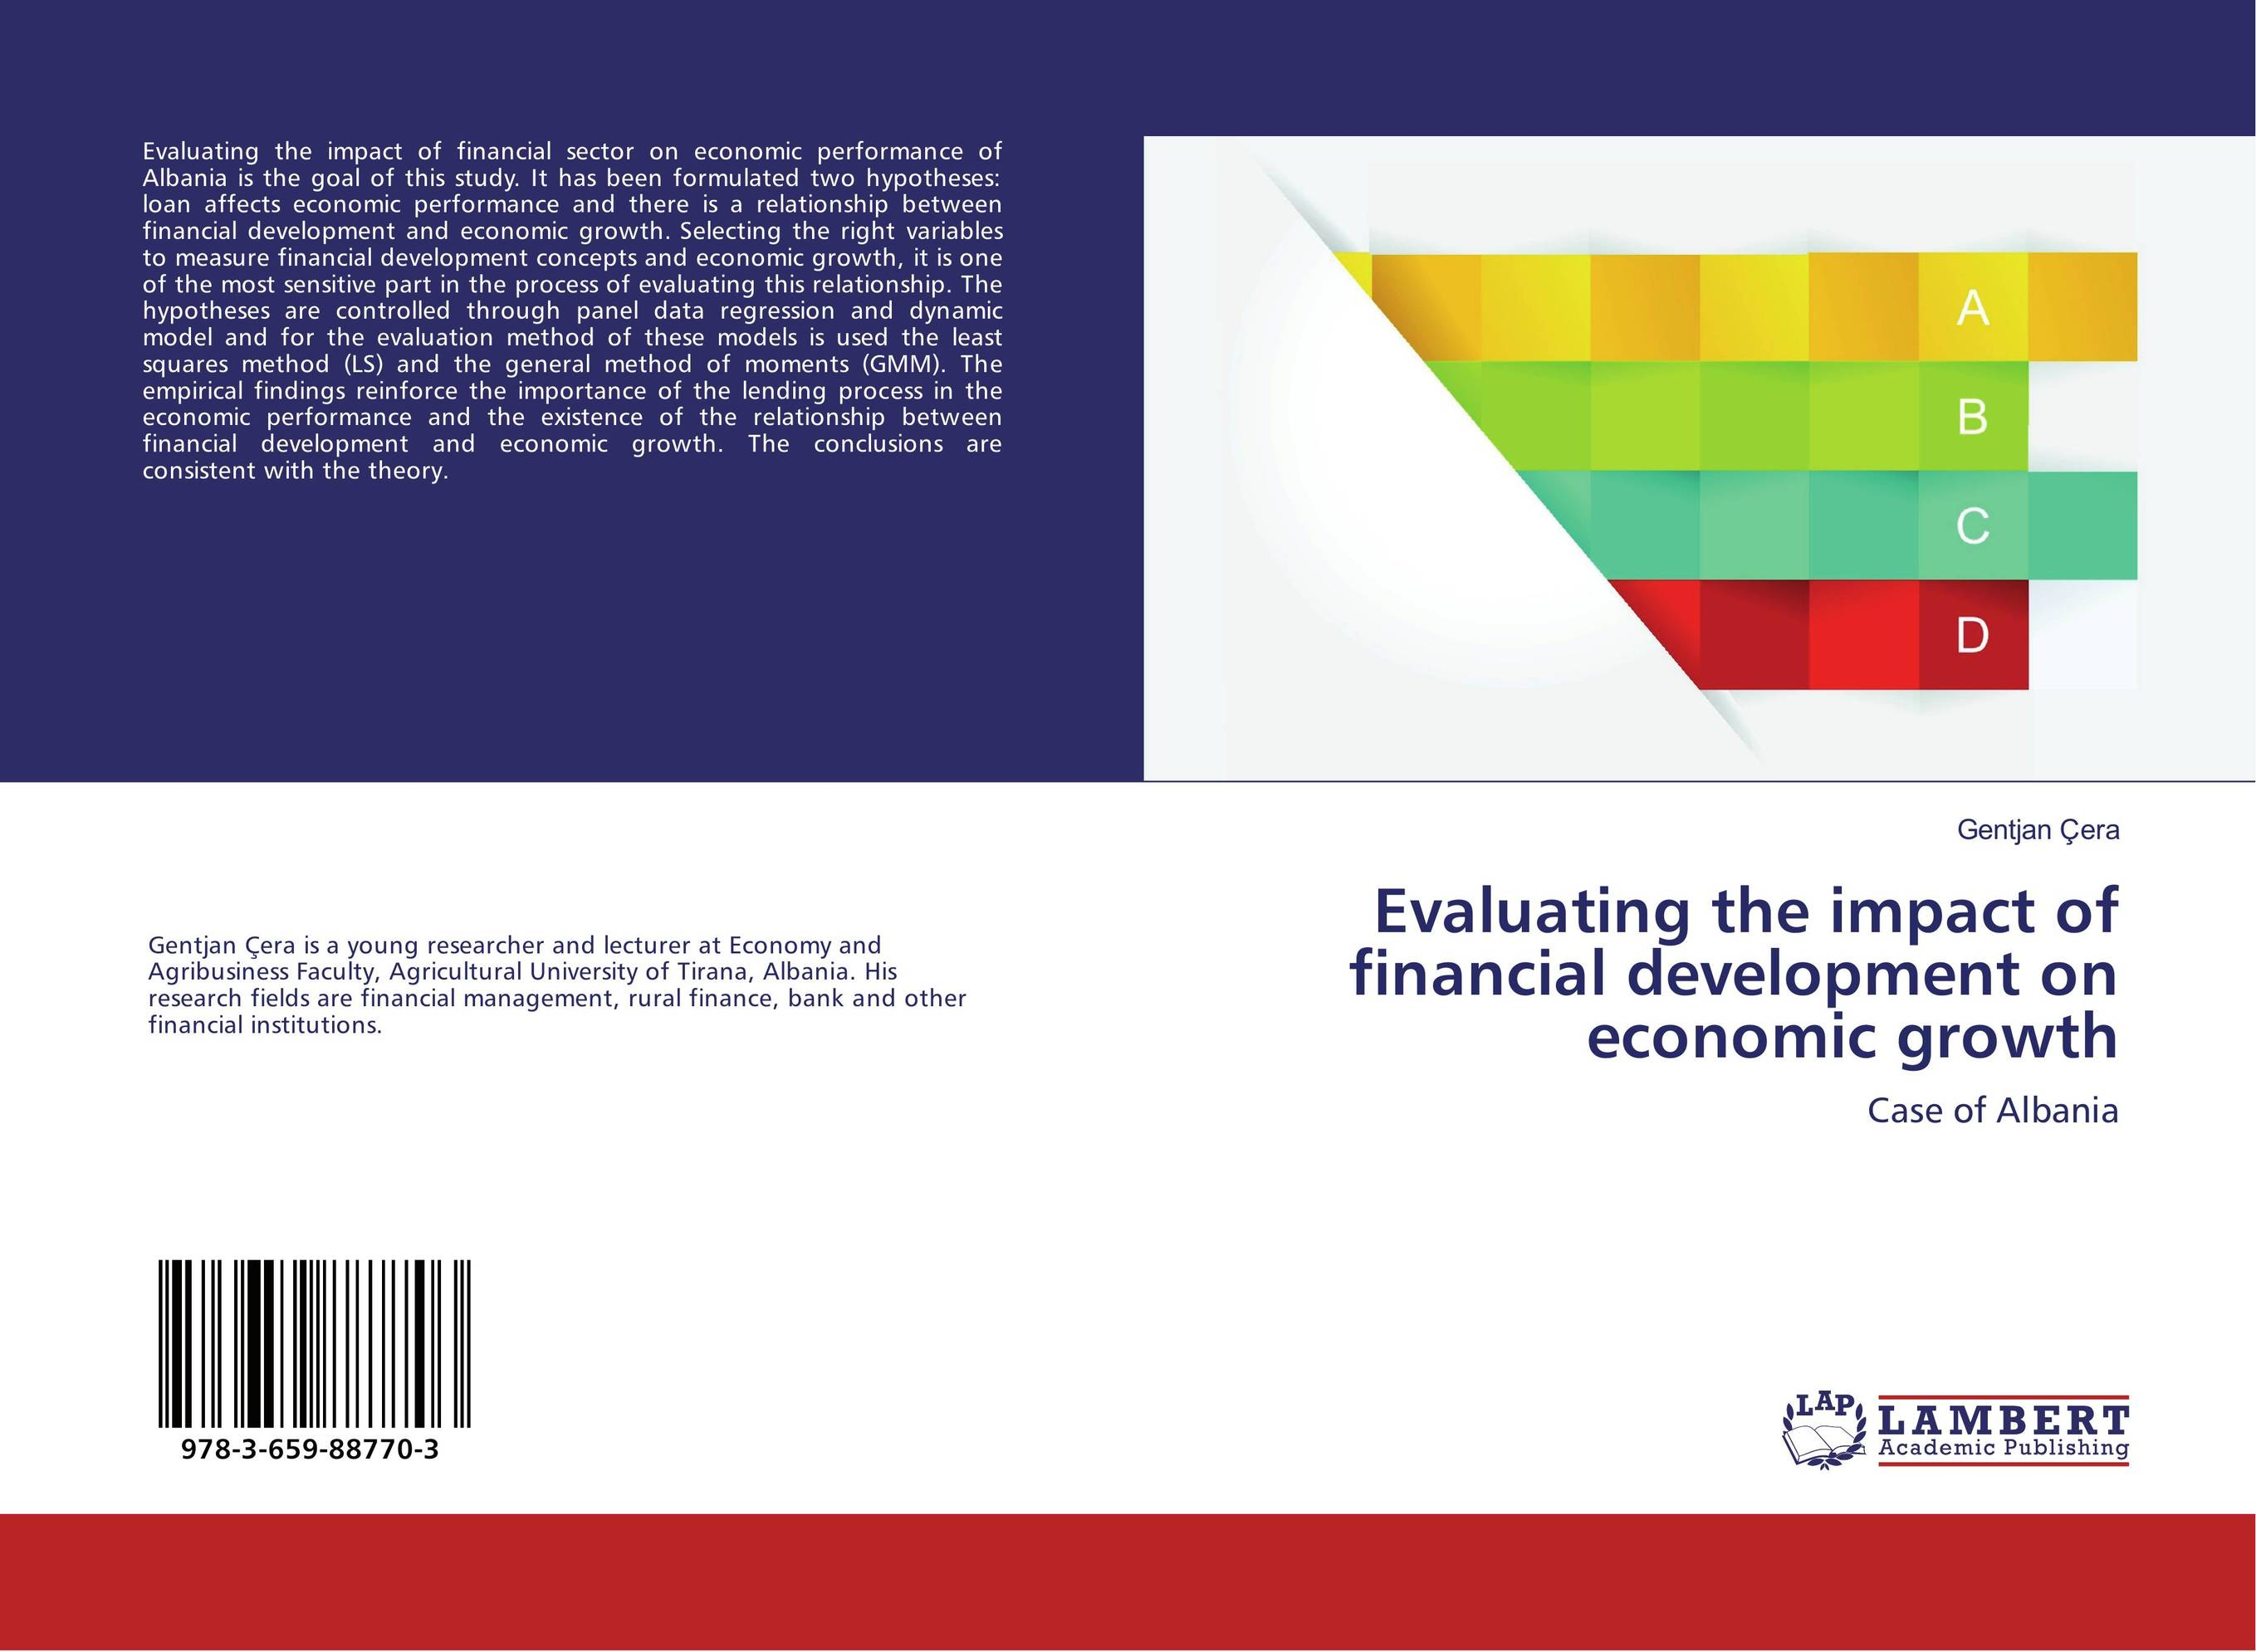 Evaluating the impact of financial development on economic growth evaluation of the impact of a mega sporting event